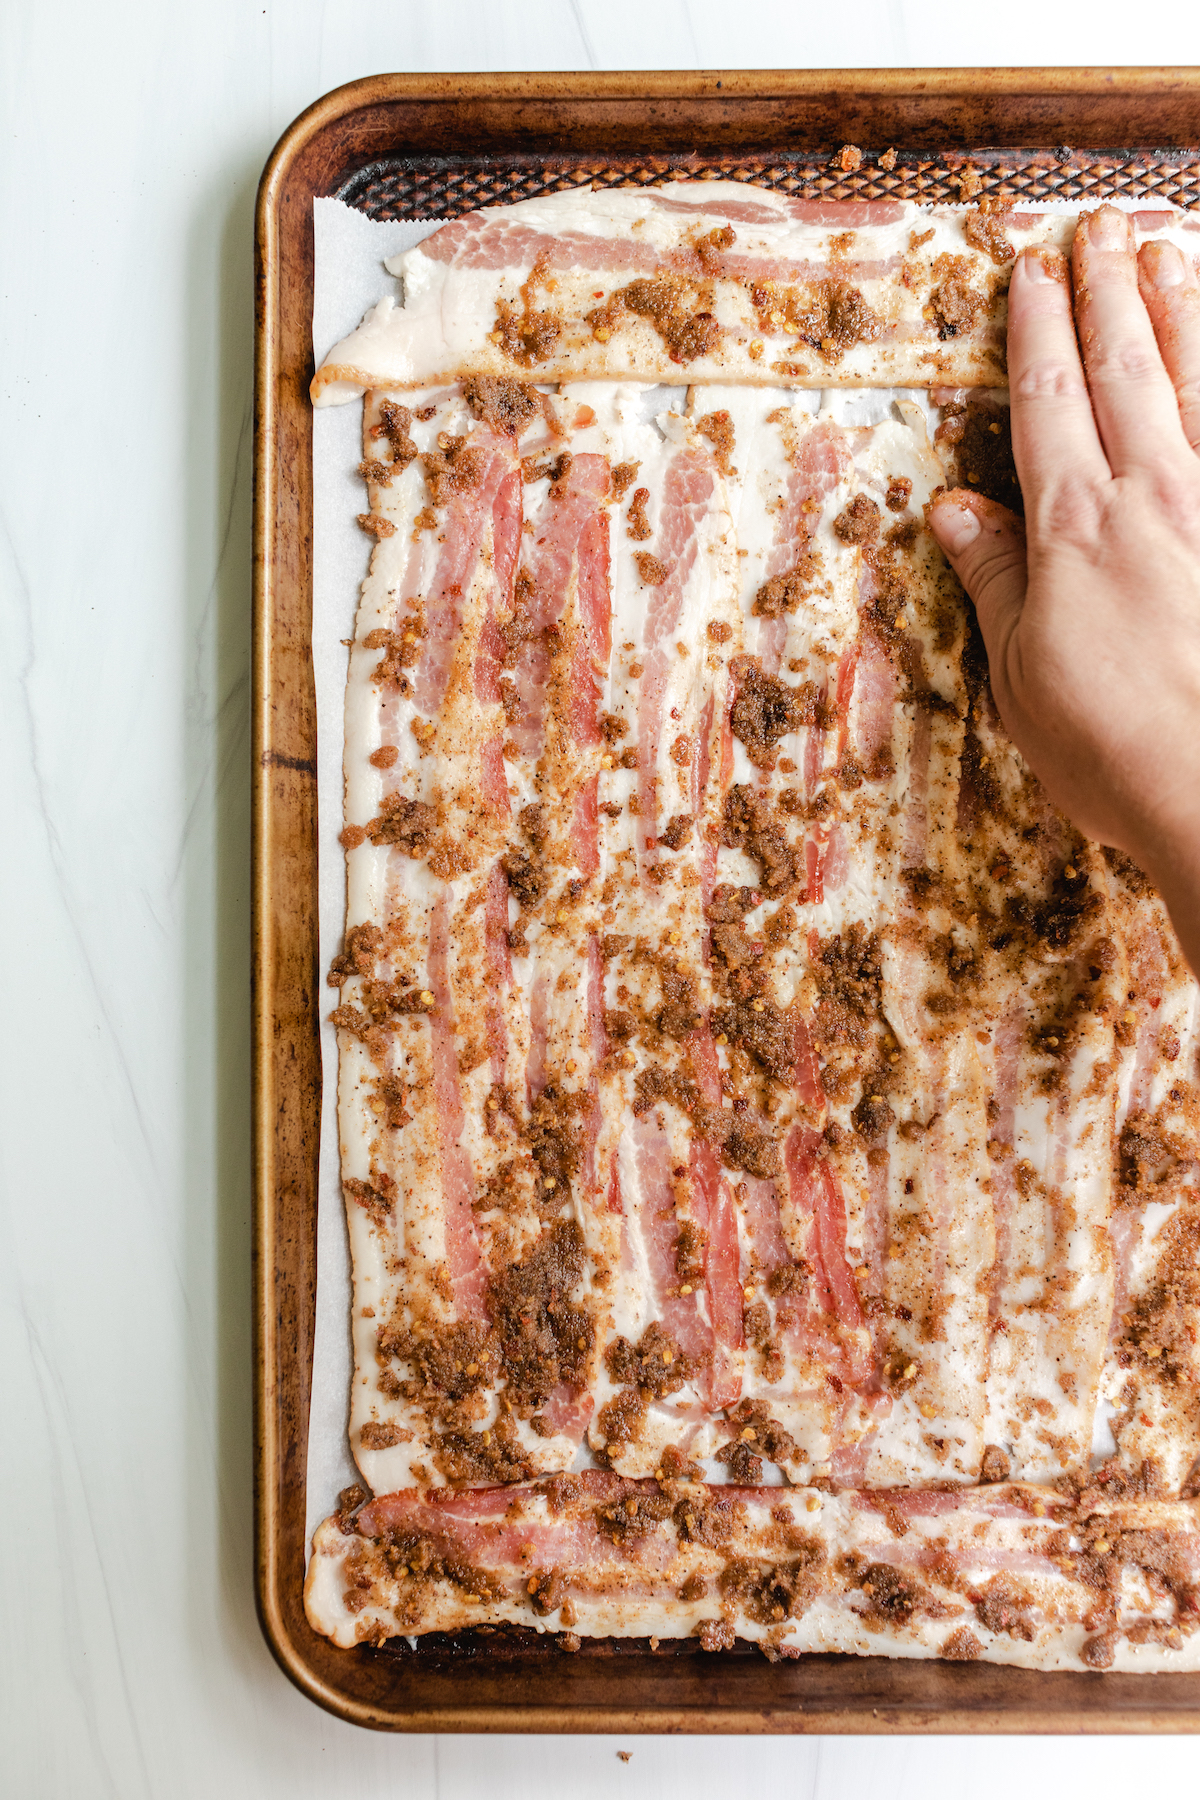 Hand spreading sugar and spice mixture over bacon on a baking sheet to make Million Dollar Bacon